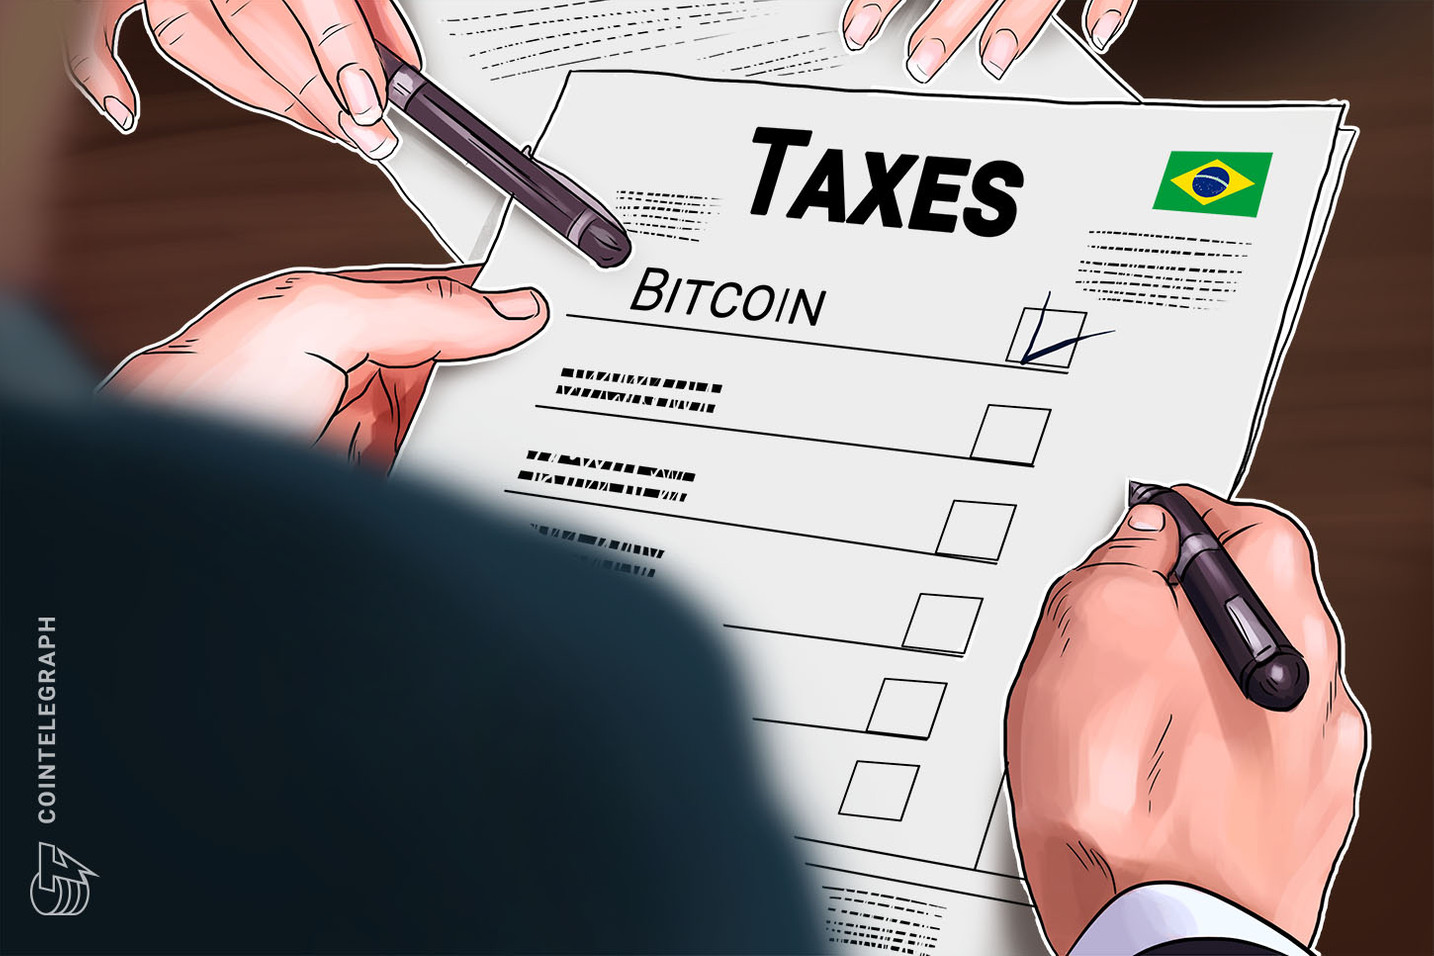 Brazilian Trade Official Says Tax Reform Will Lead to Evasion Via Crypto